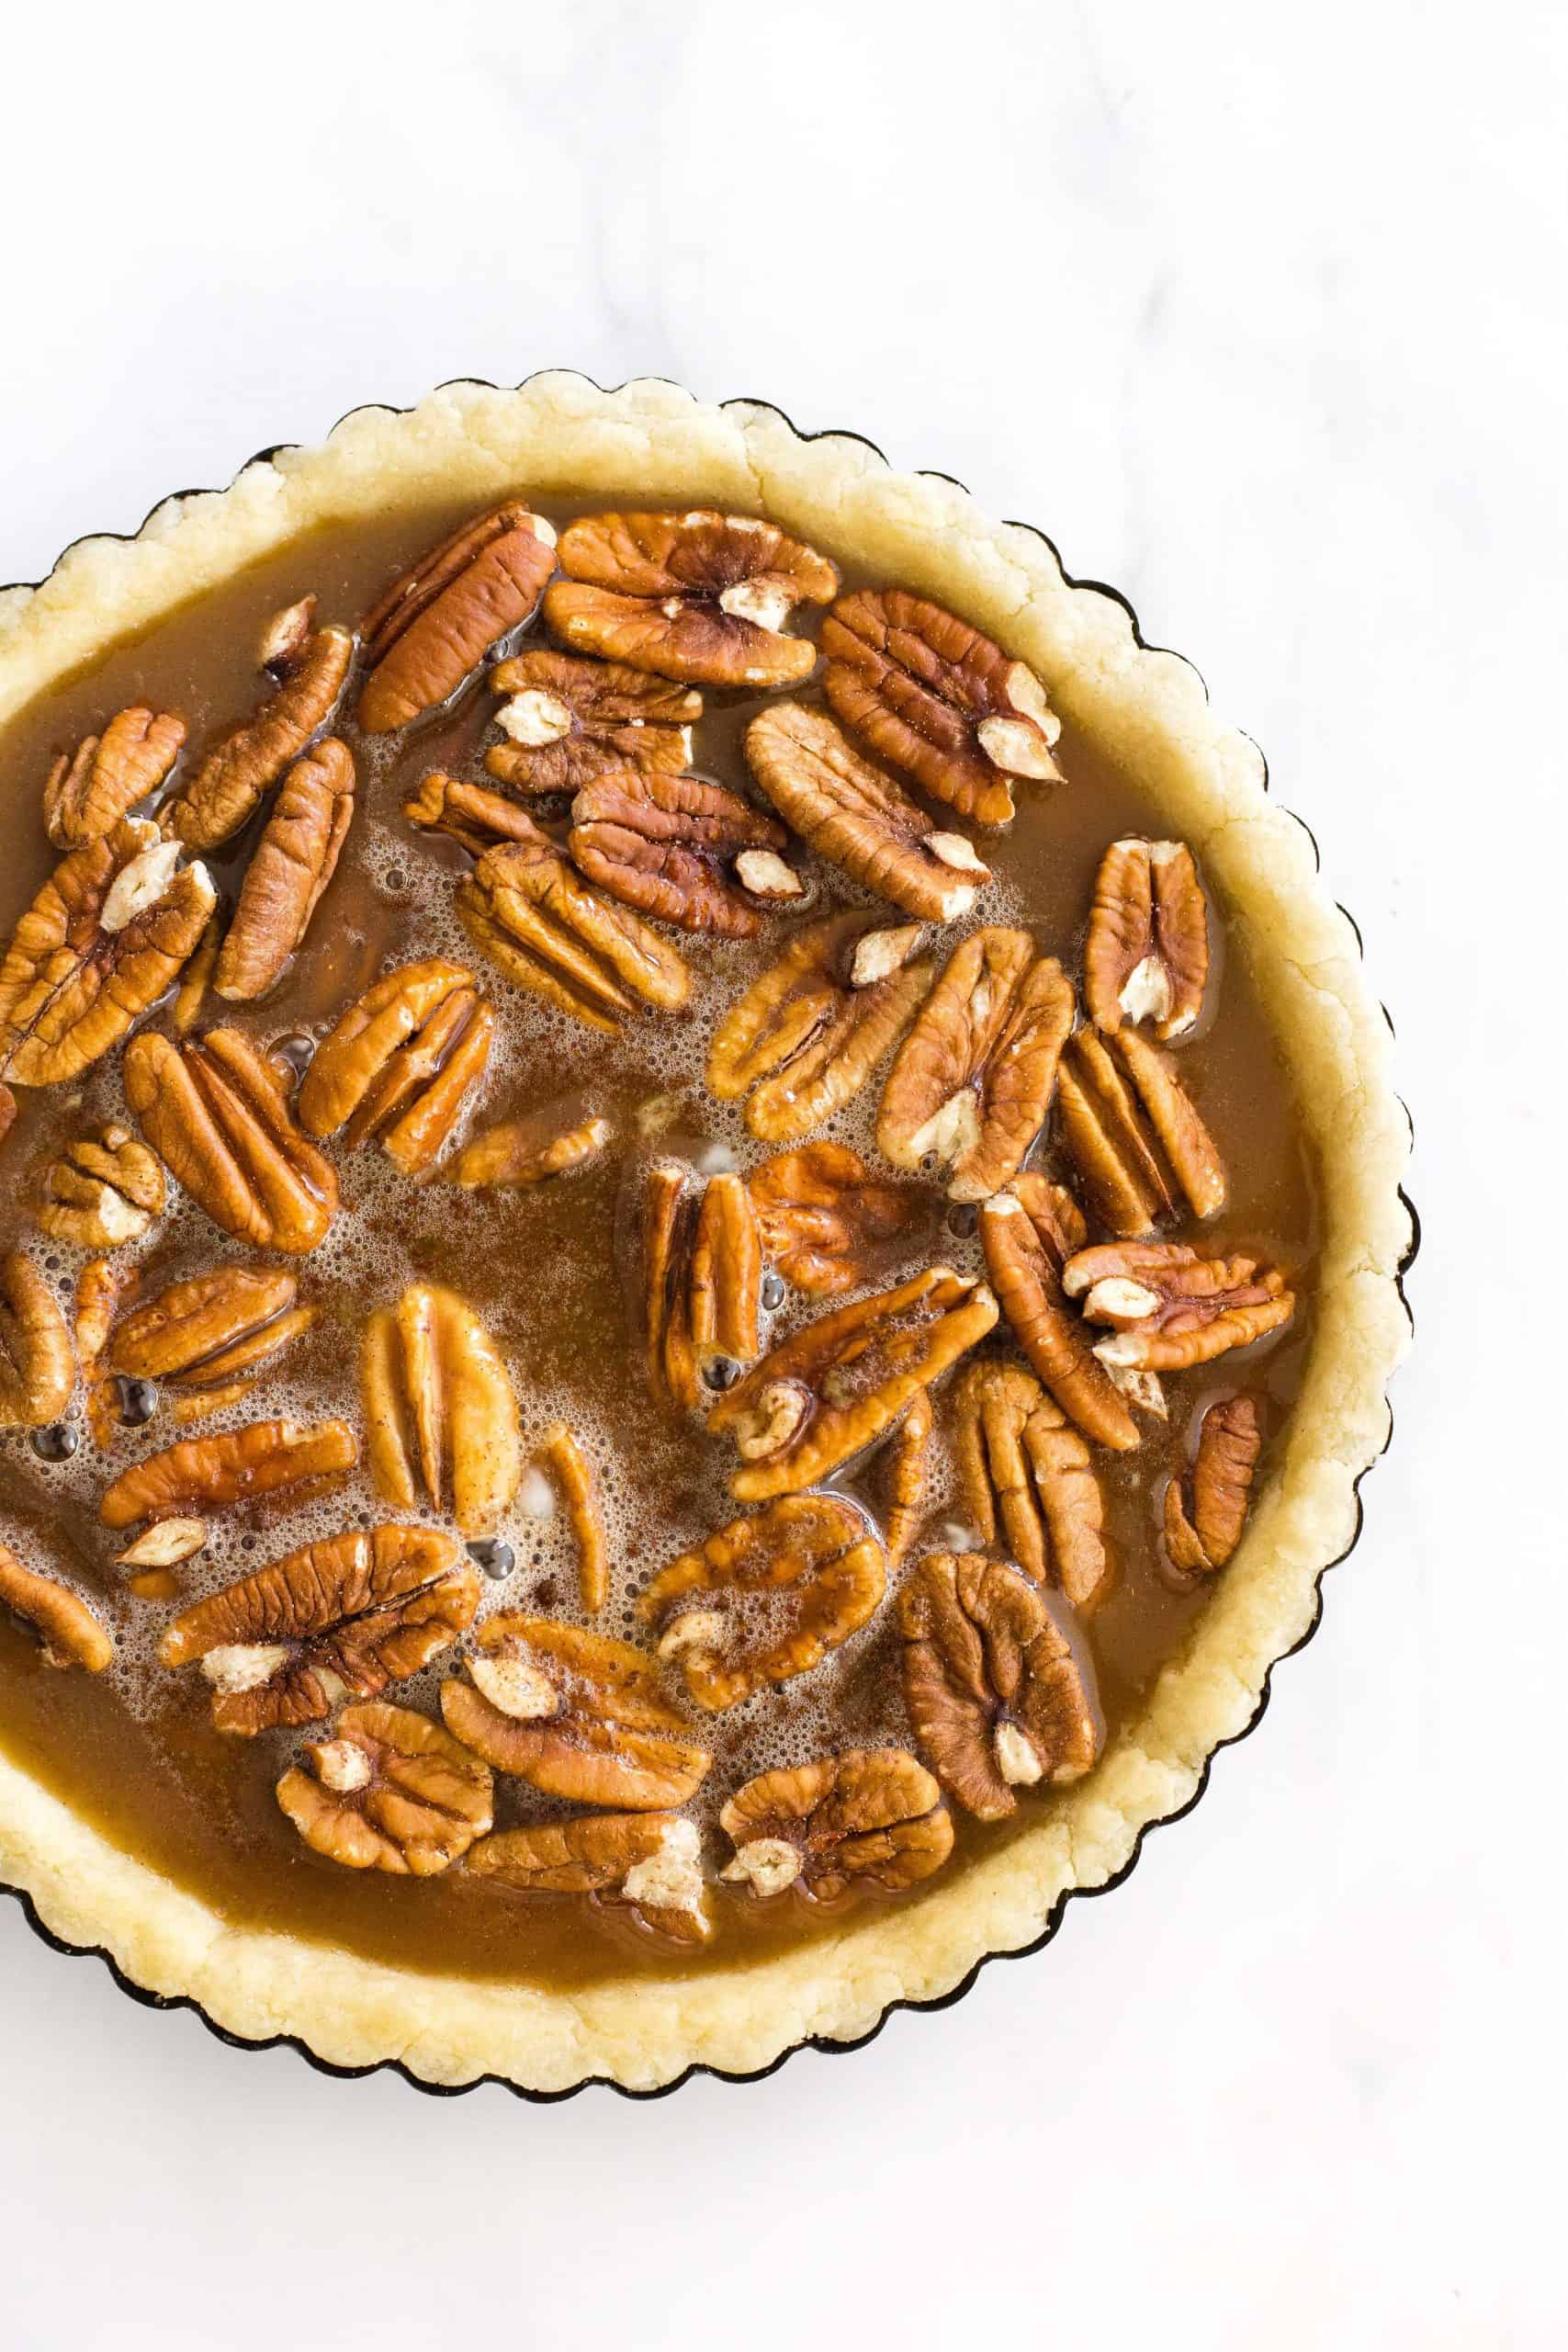 Uncooked pecan pie in a pie tin ready to be baked.